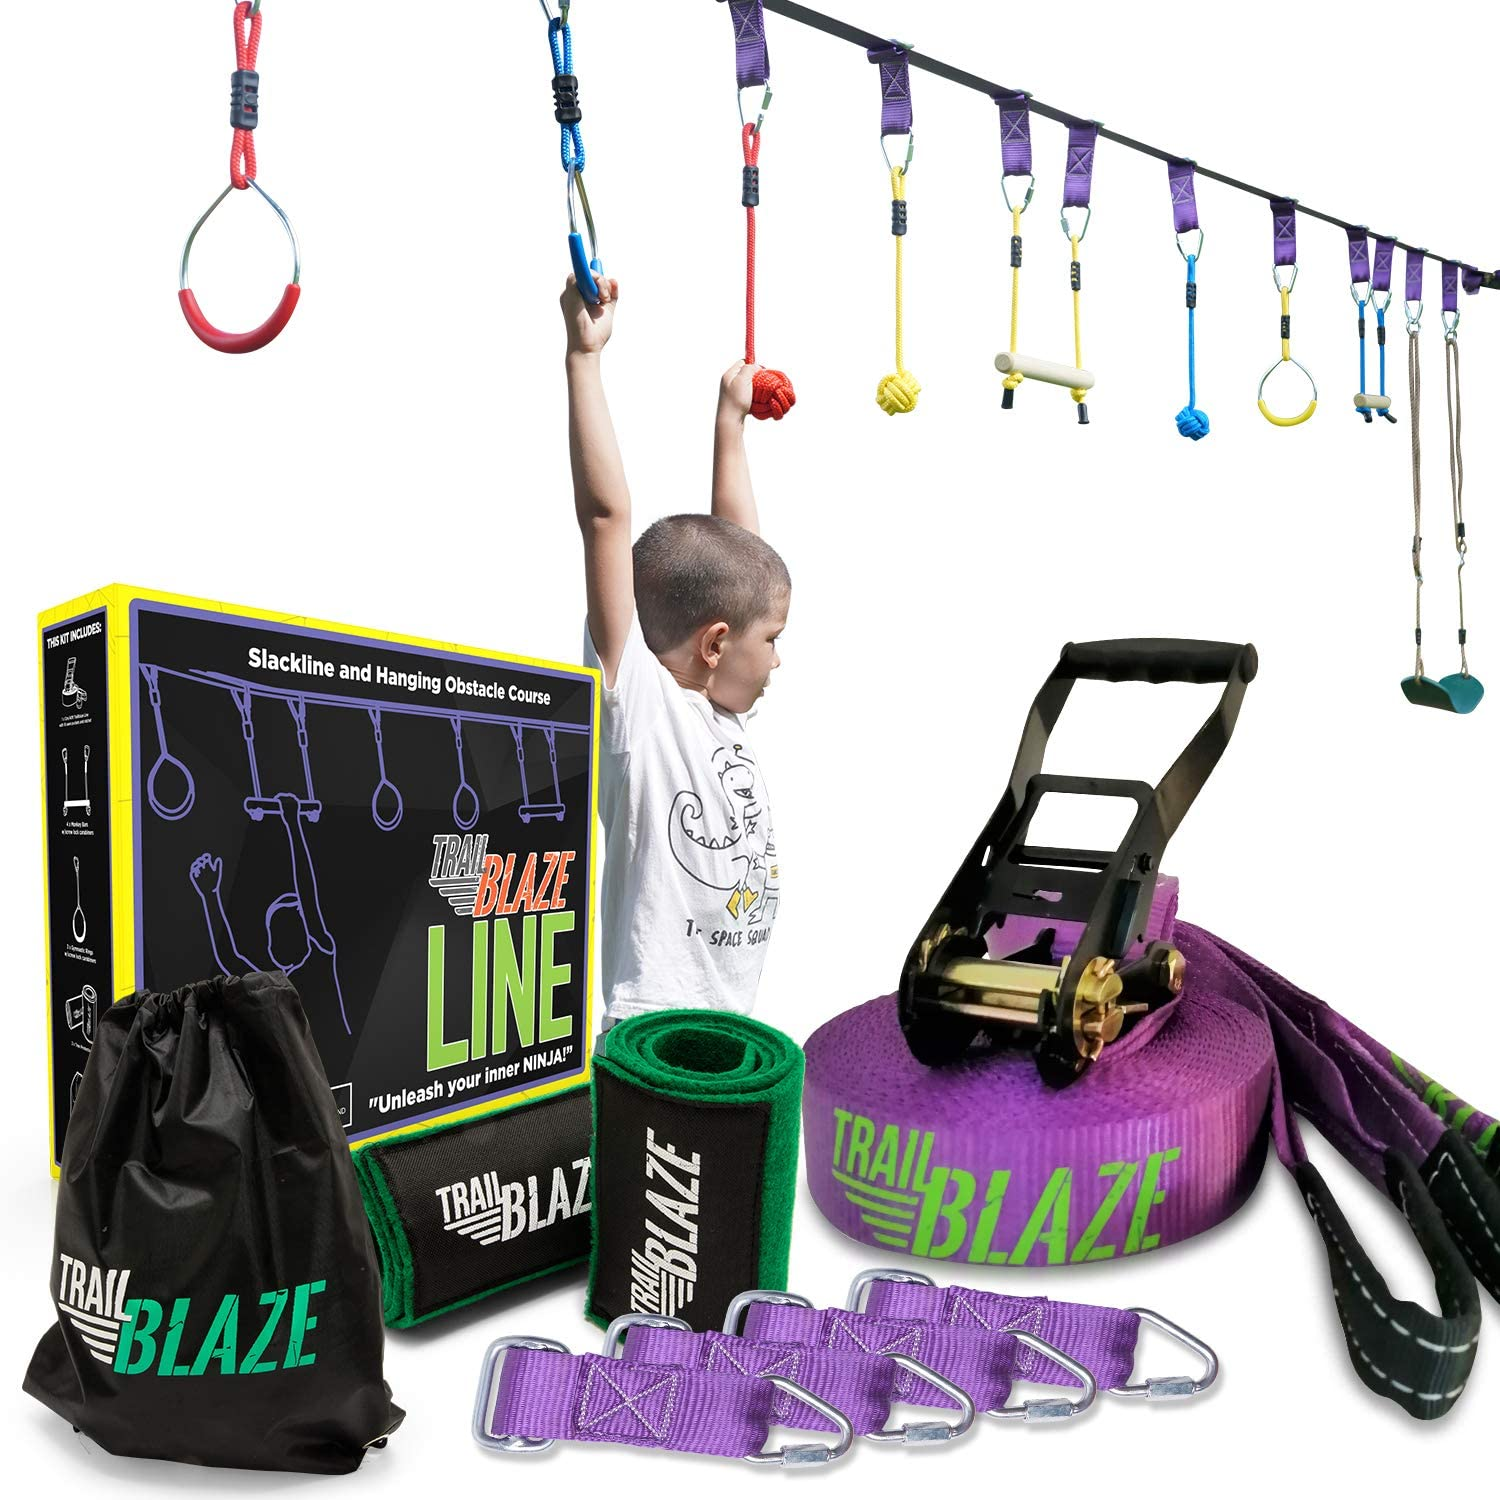 Ninja Slackline Hanging Obstacle Ninja Course - 50 Ninja Line Monkey Bars Kit + Bonus Seat Swing - More Obstacles than Ever w/ Adjustable Positions - ...